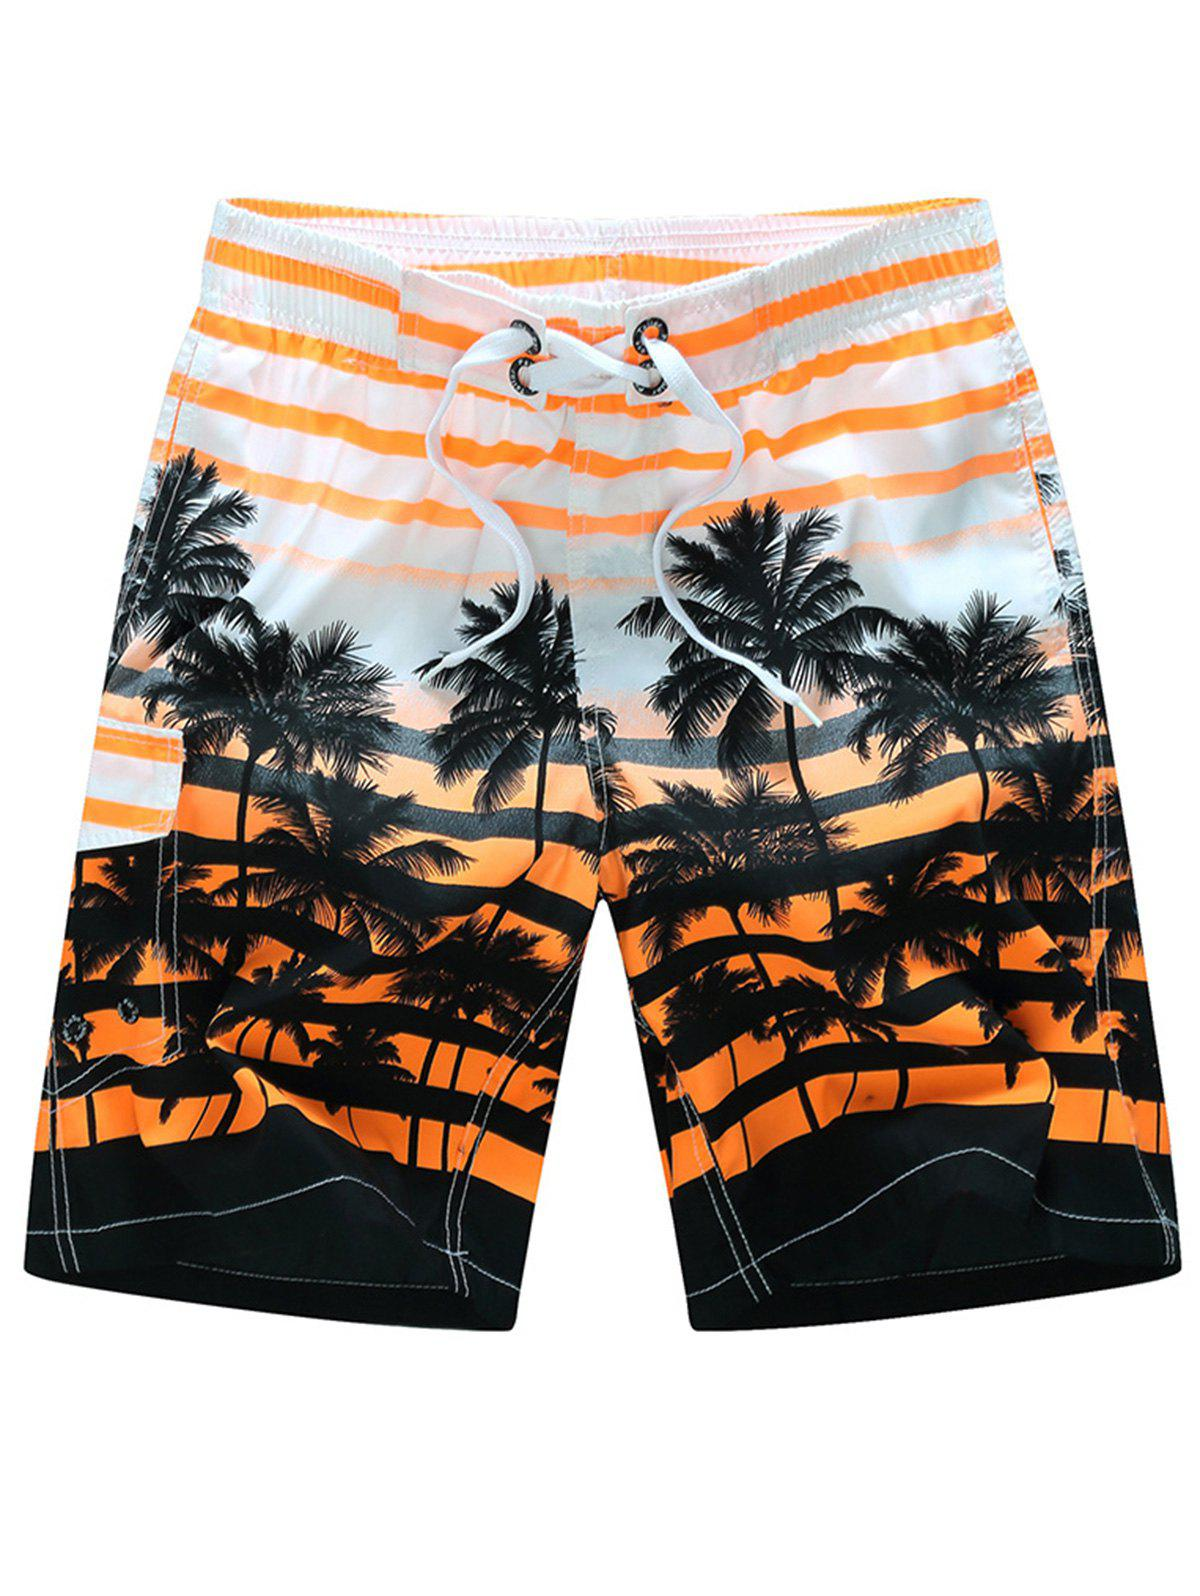 Plam Tree Striped Hawaiian Shorts - ORANGE RED 2XL